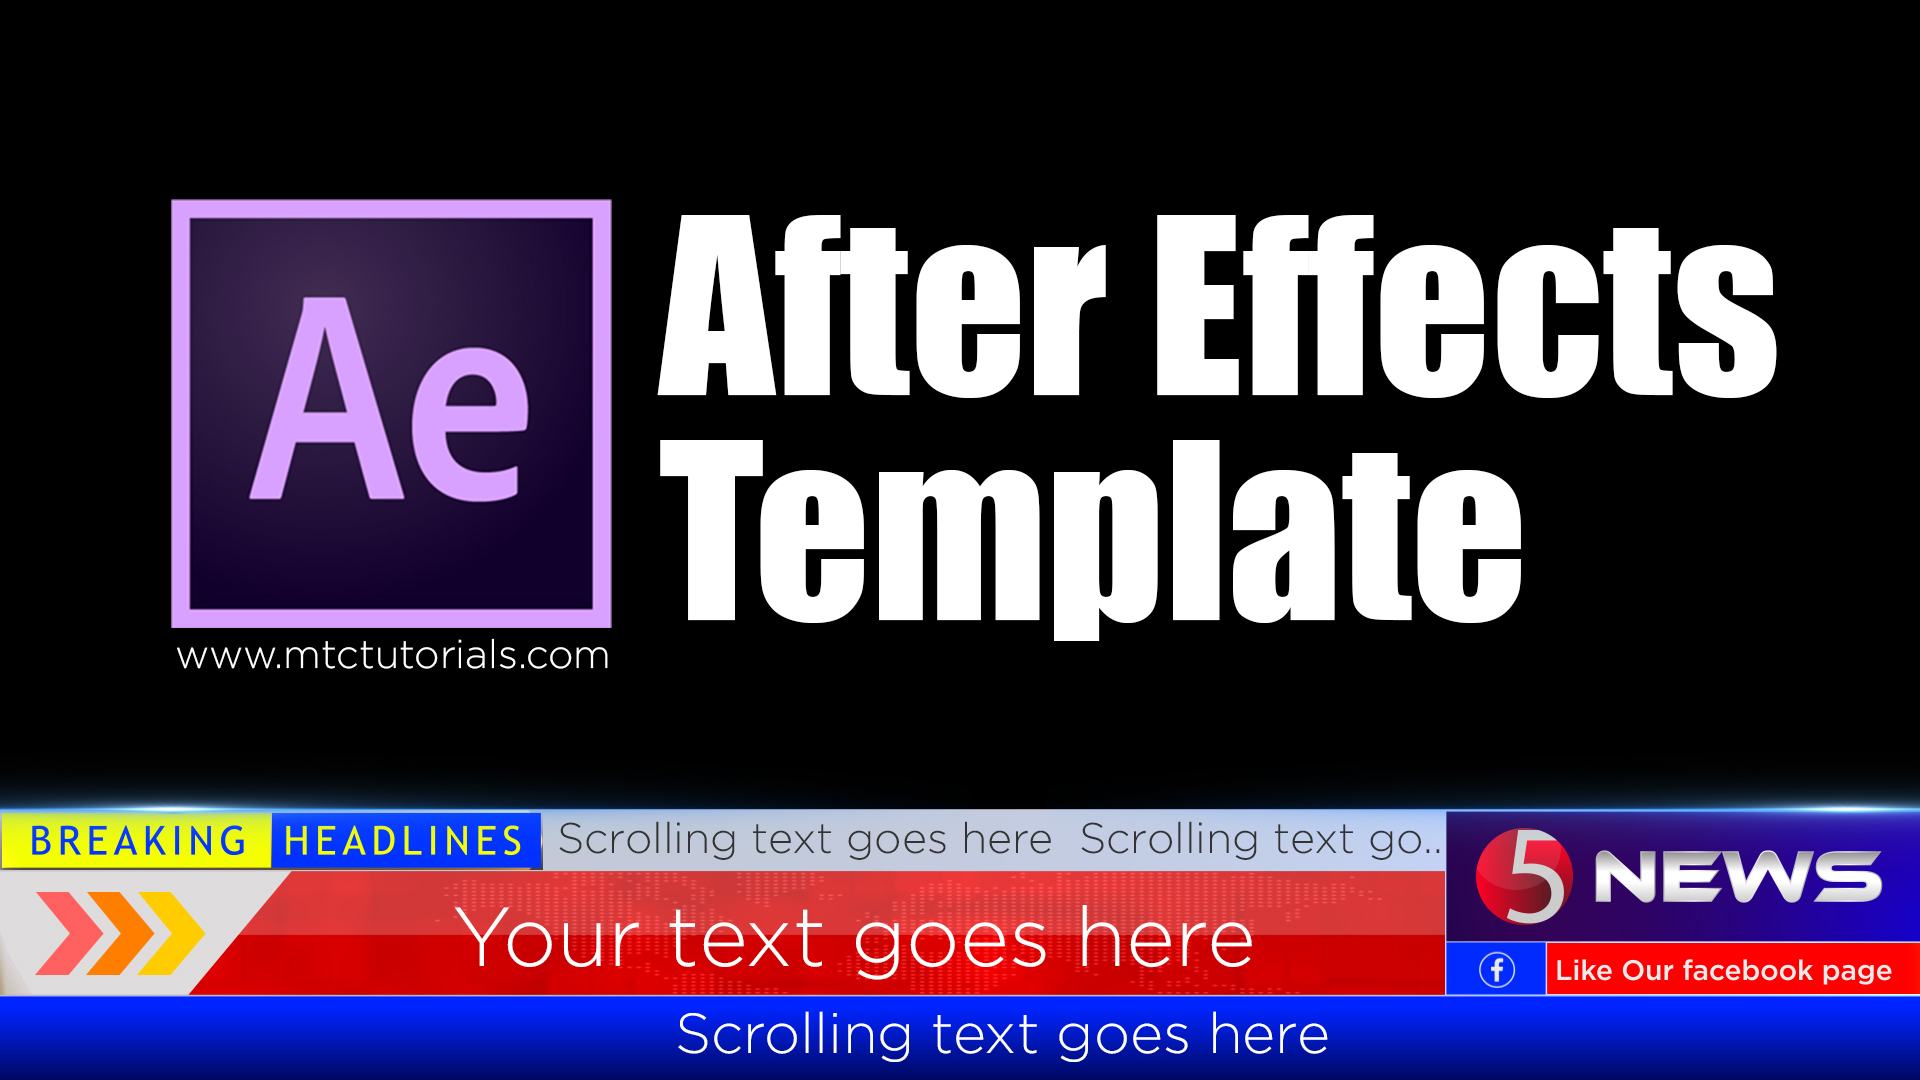 Download After Effects LowerThird Template For News - MTC